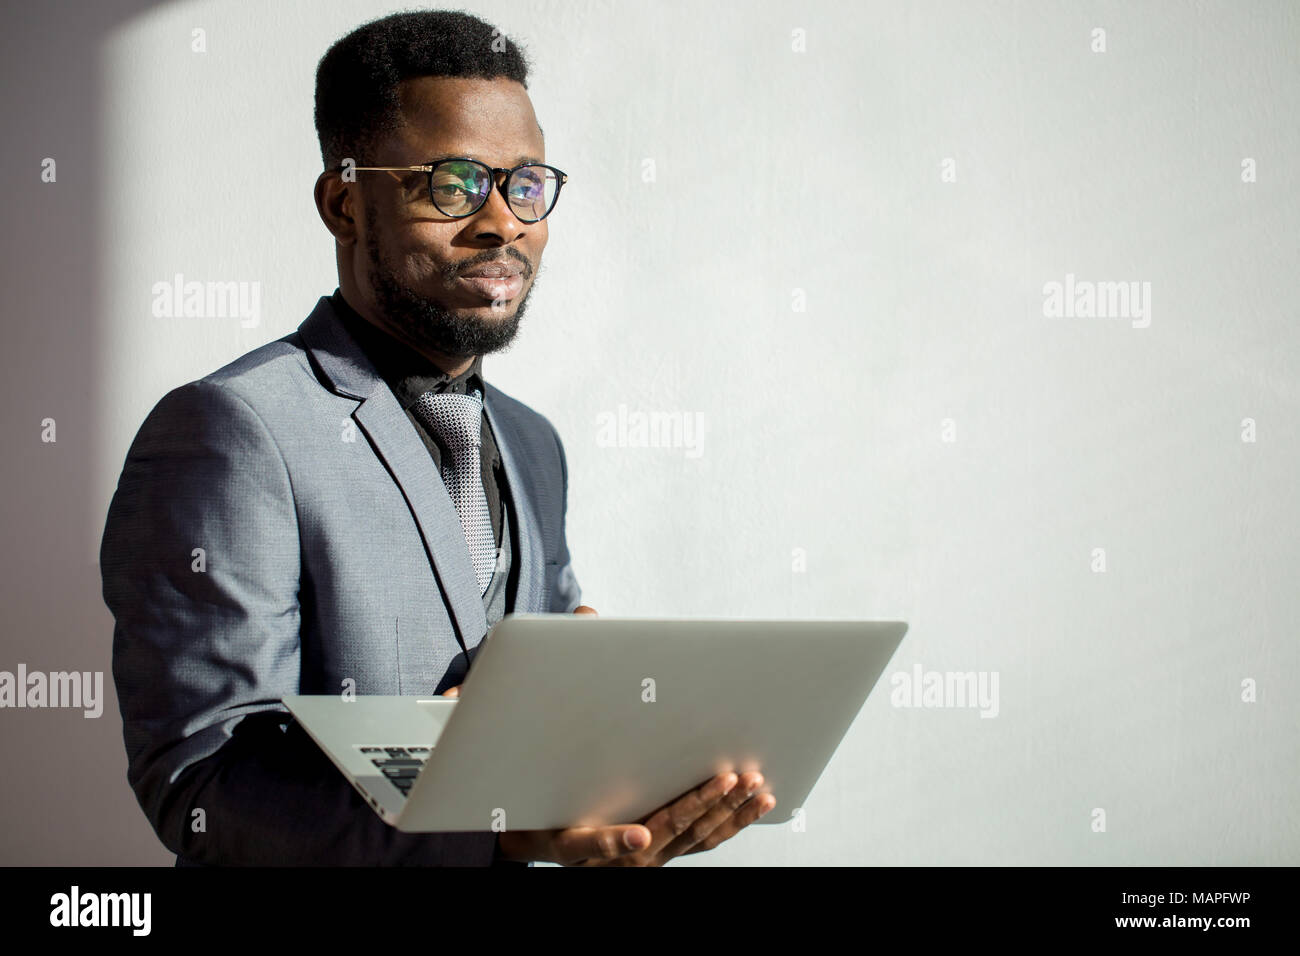 african coworker wearing glasses and using laptop in office - Stock Image